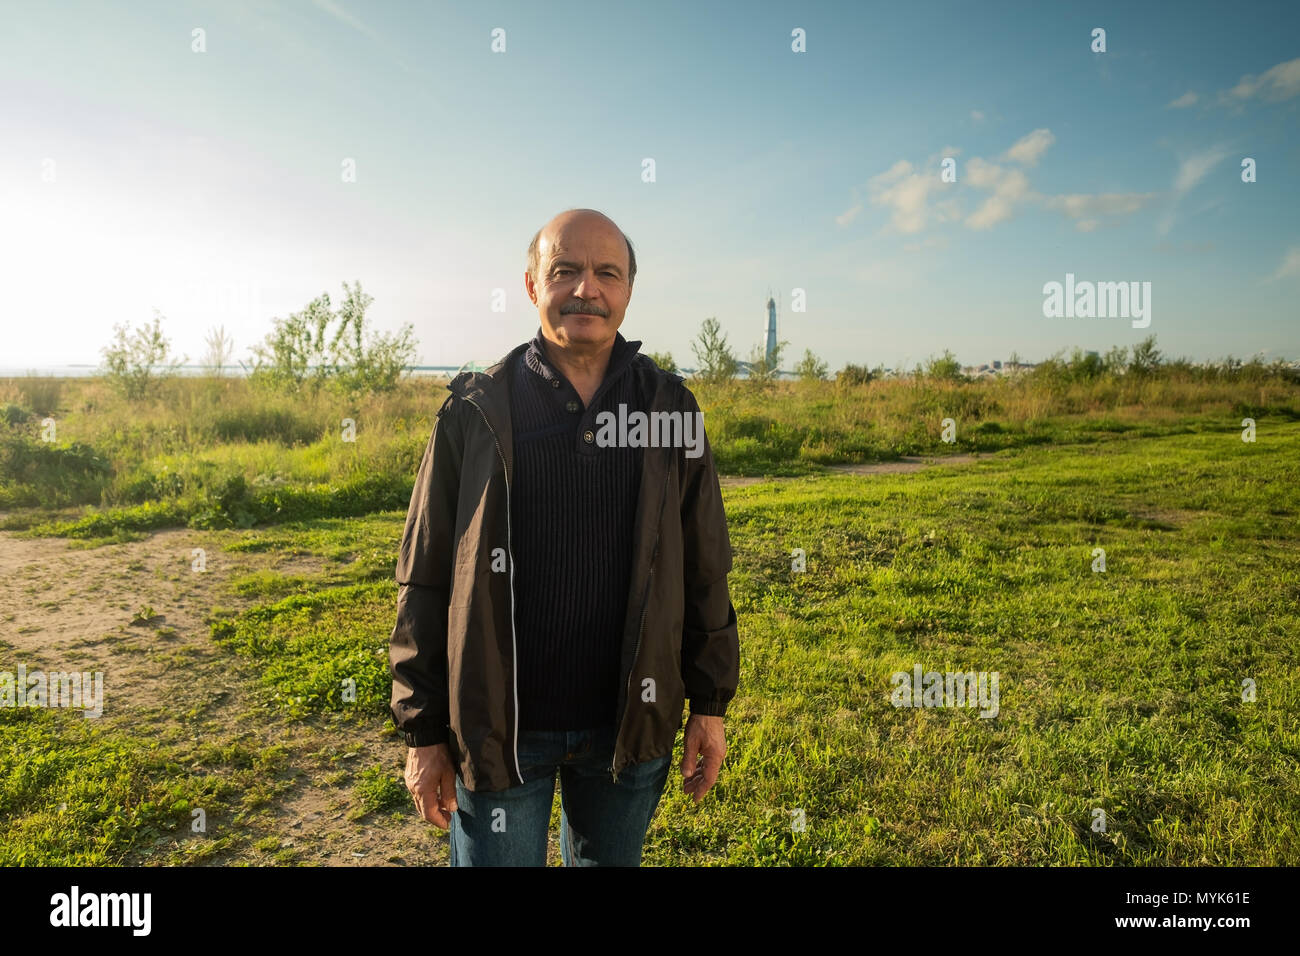 Portrait of a senior man outdoors - Stock Image